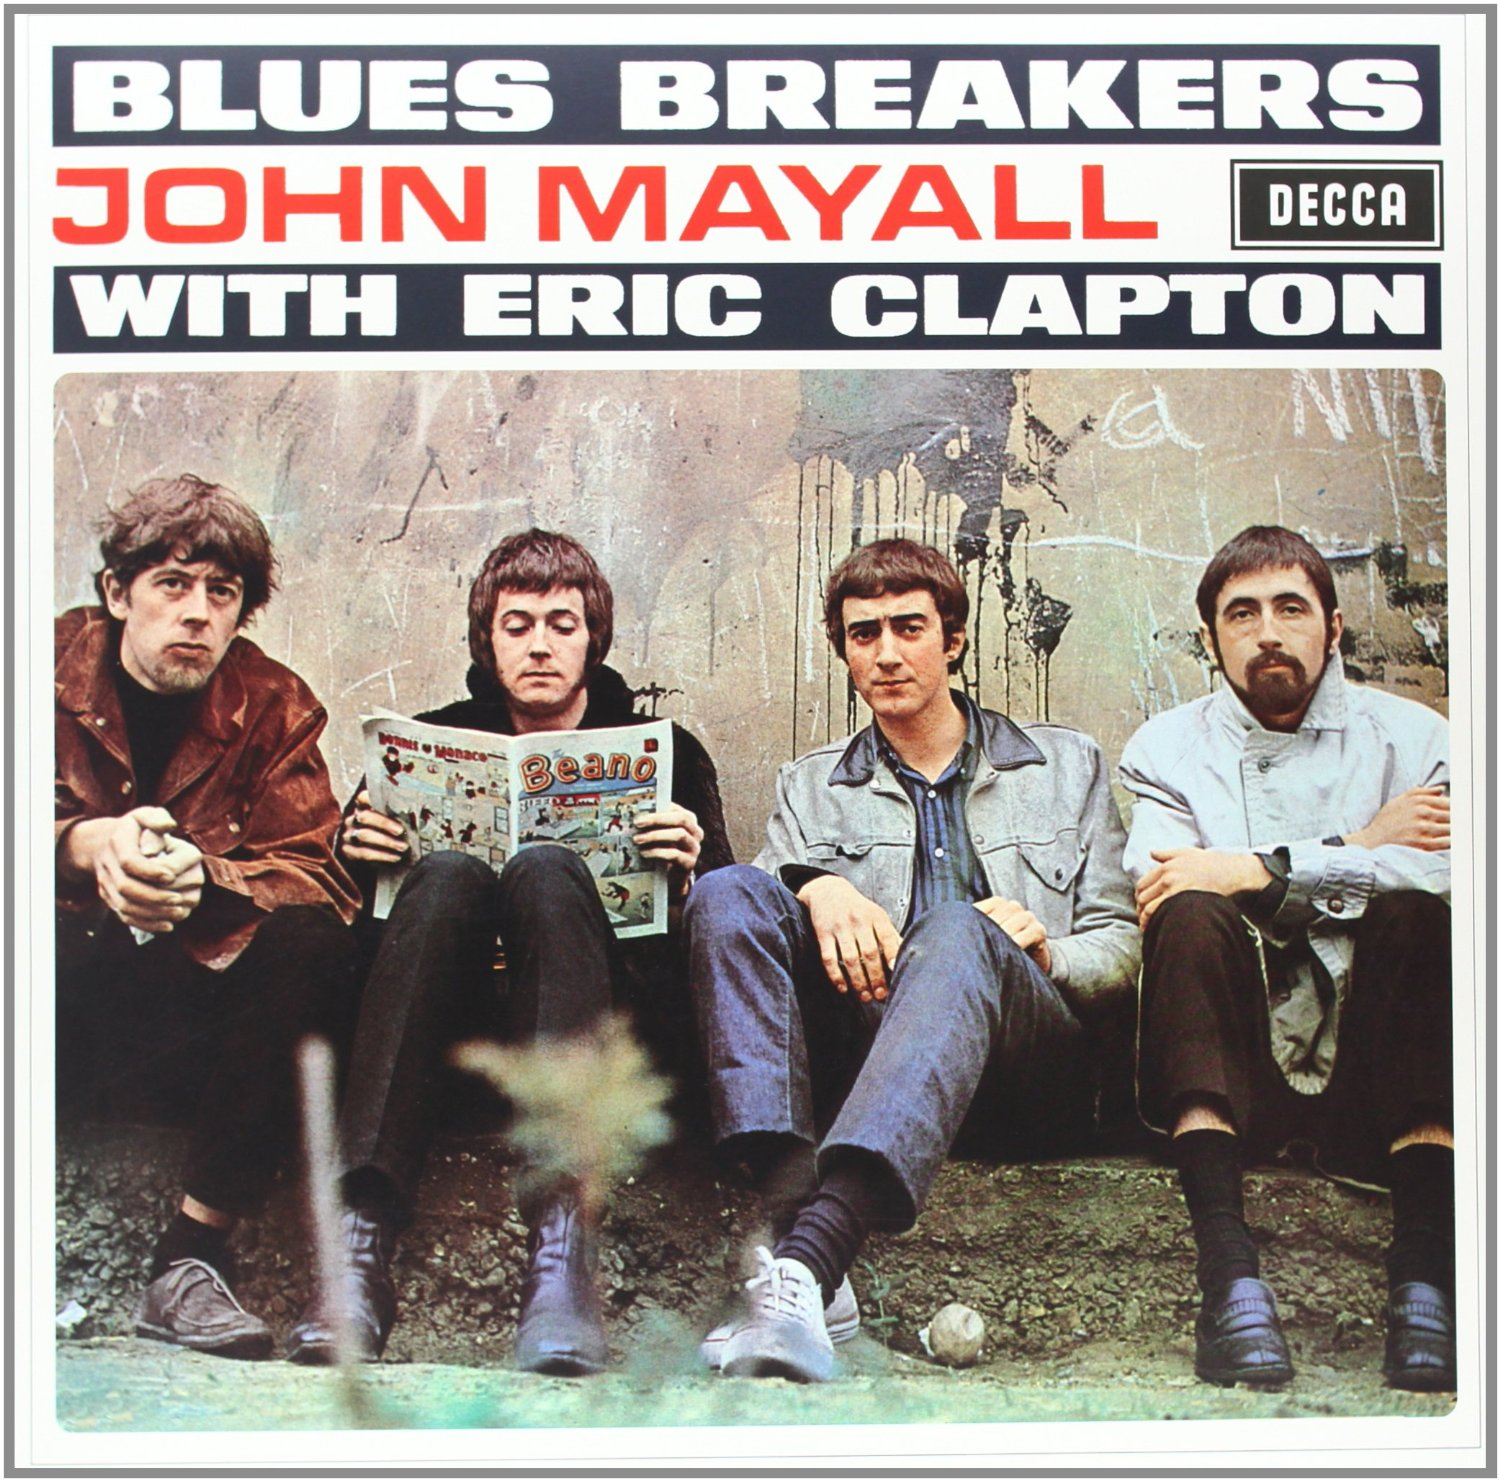 John mayall with eric clapton bluesbreakers lp vinyl new 42280008611 item specifics publicscrutiny Images